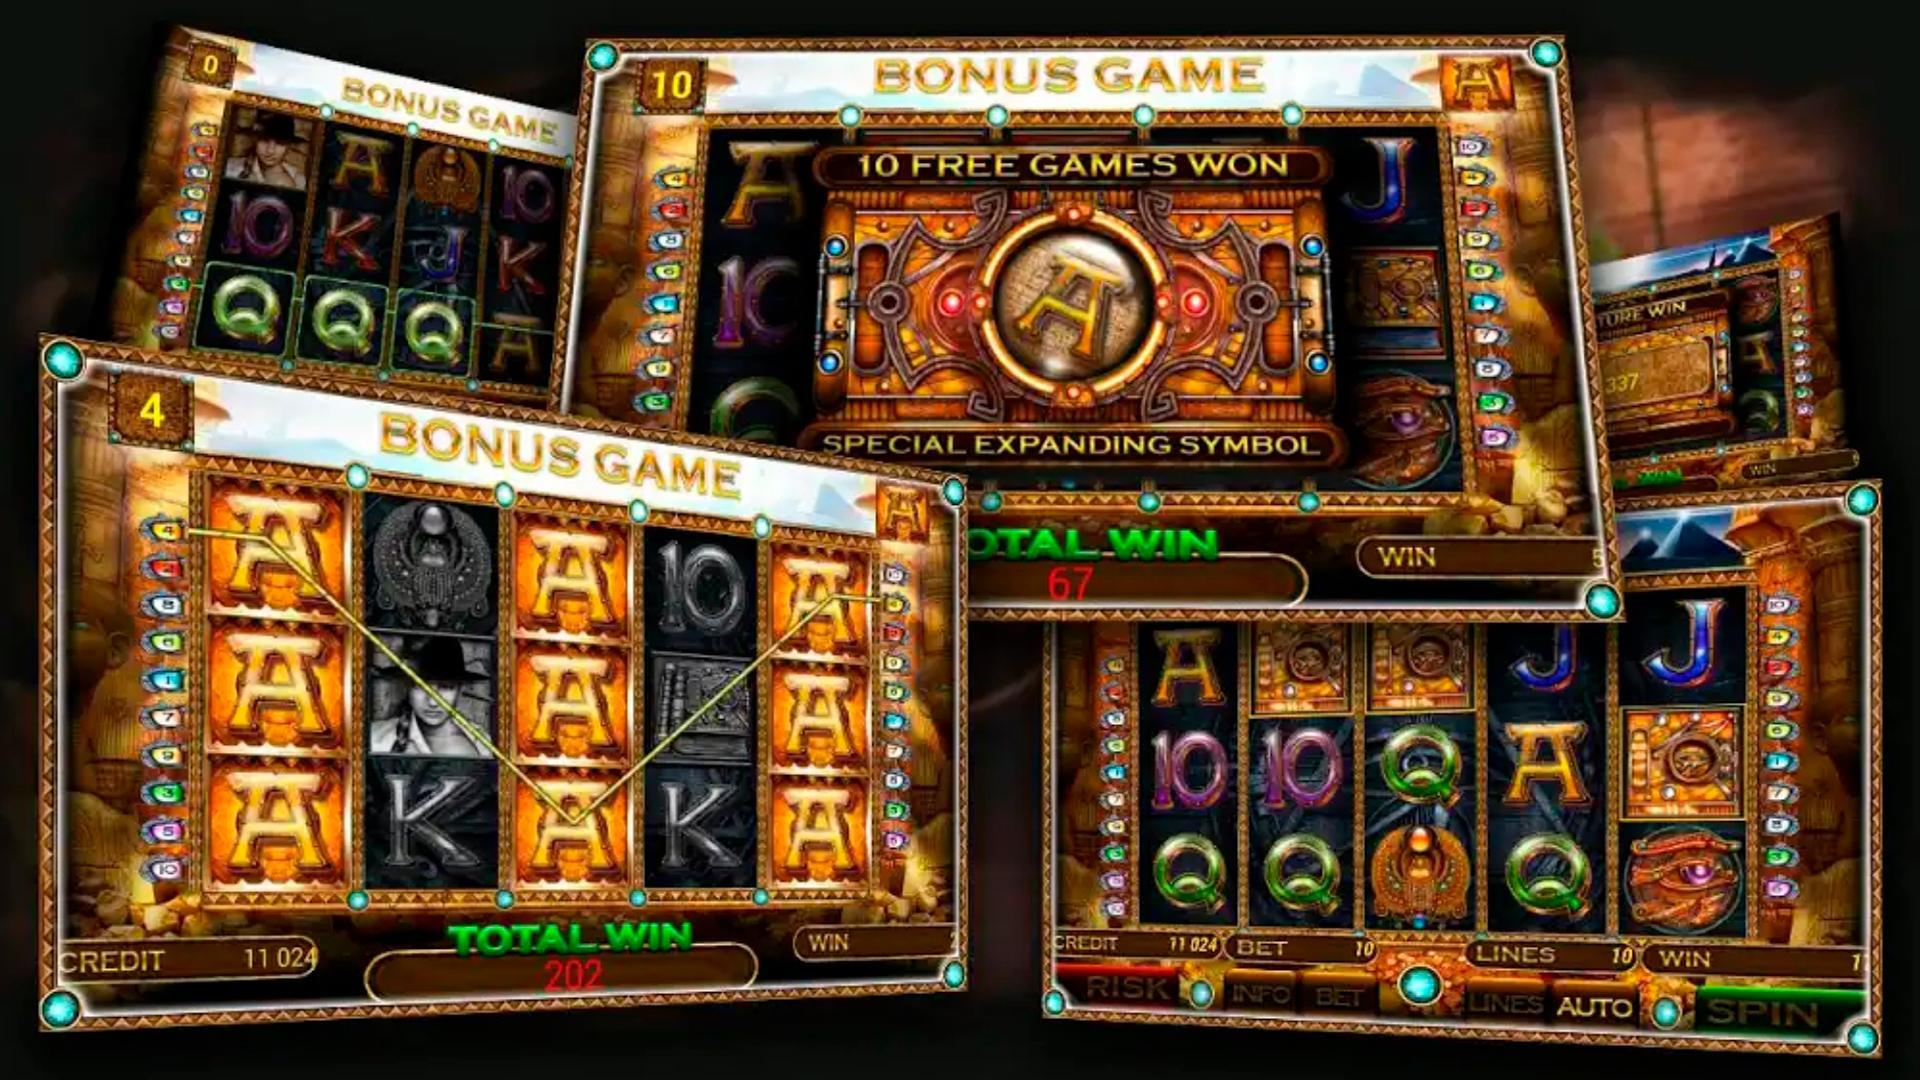 How to Register for Online Slots in 6 Steps in Just 2 Minutes